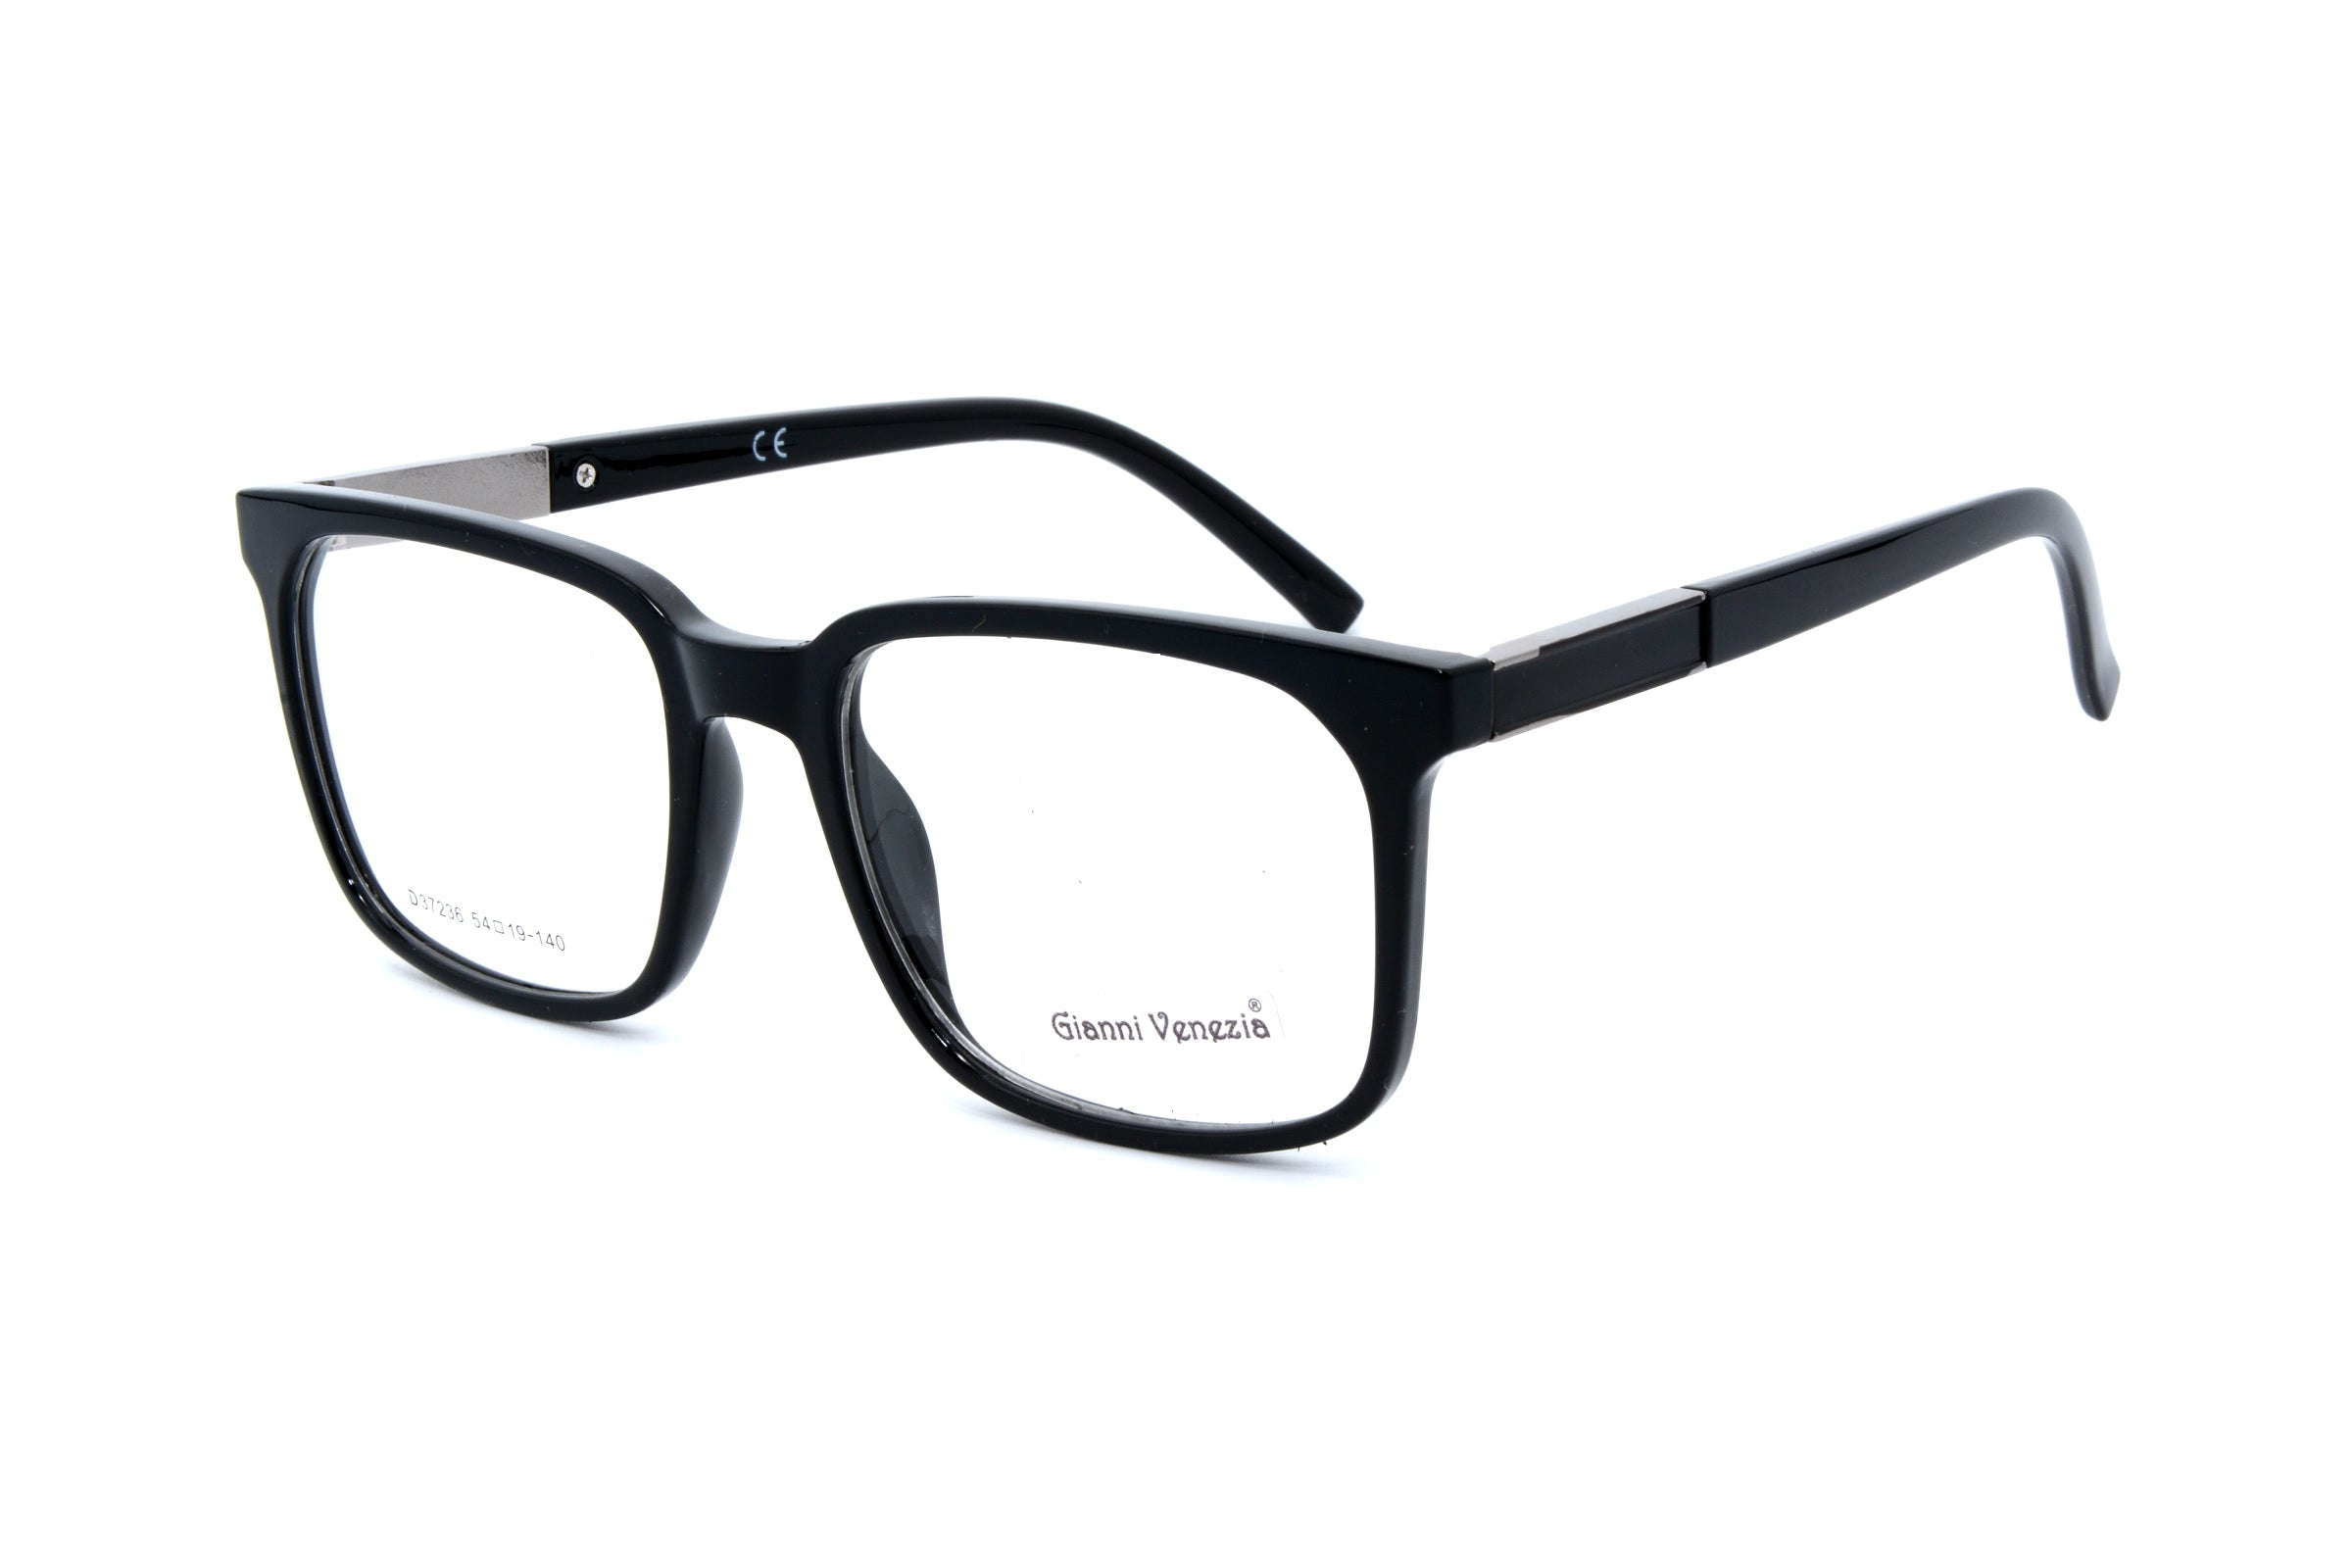 Gianni Venezia eyewear 37236, C2 - Optics Trading